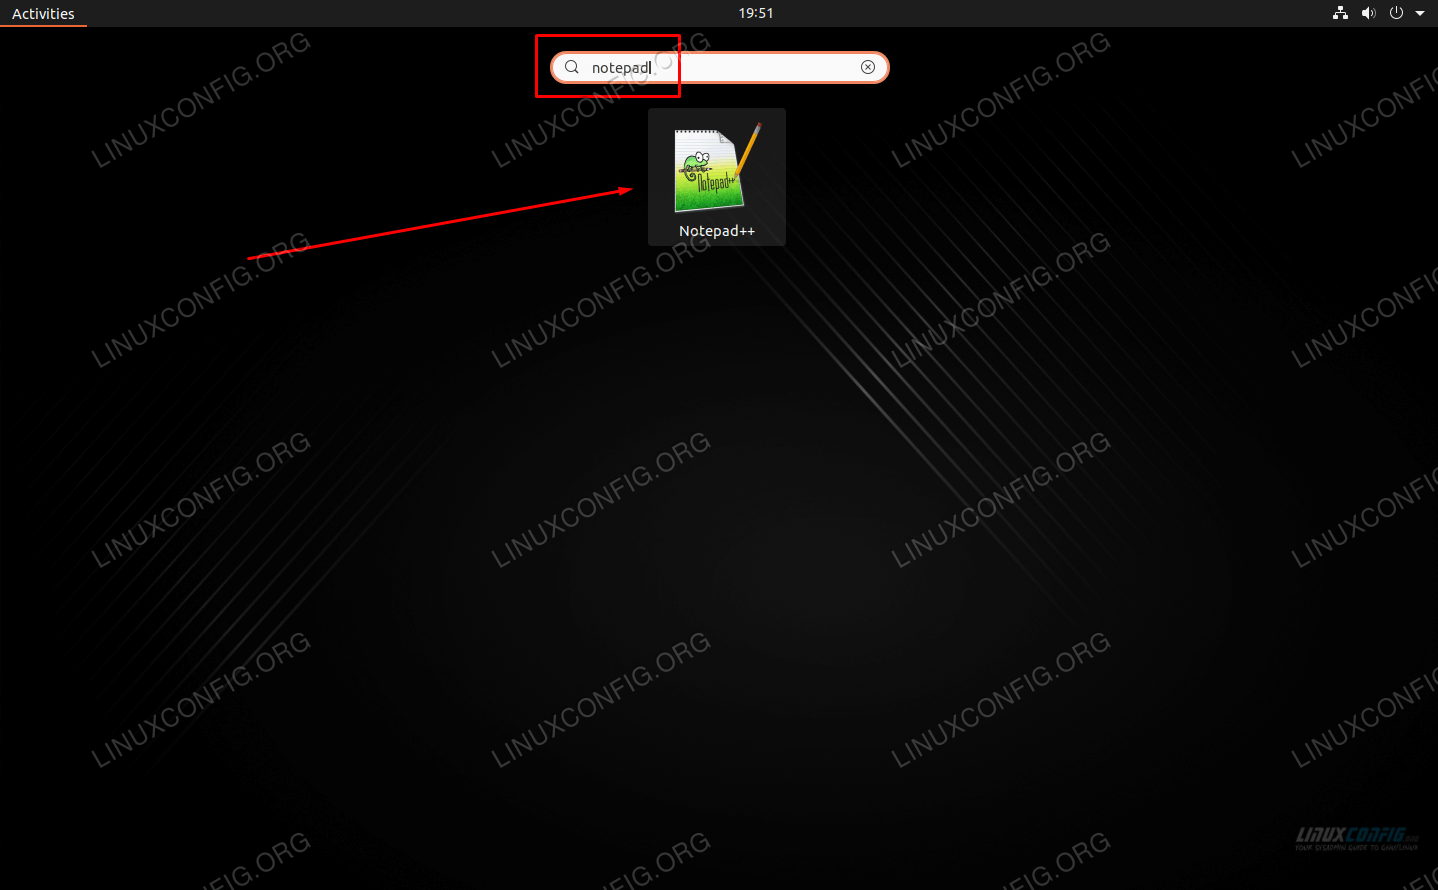 Open Notepad++ from the app launcher or from terminal